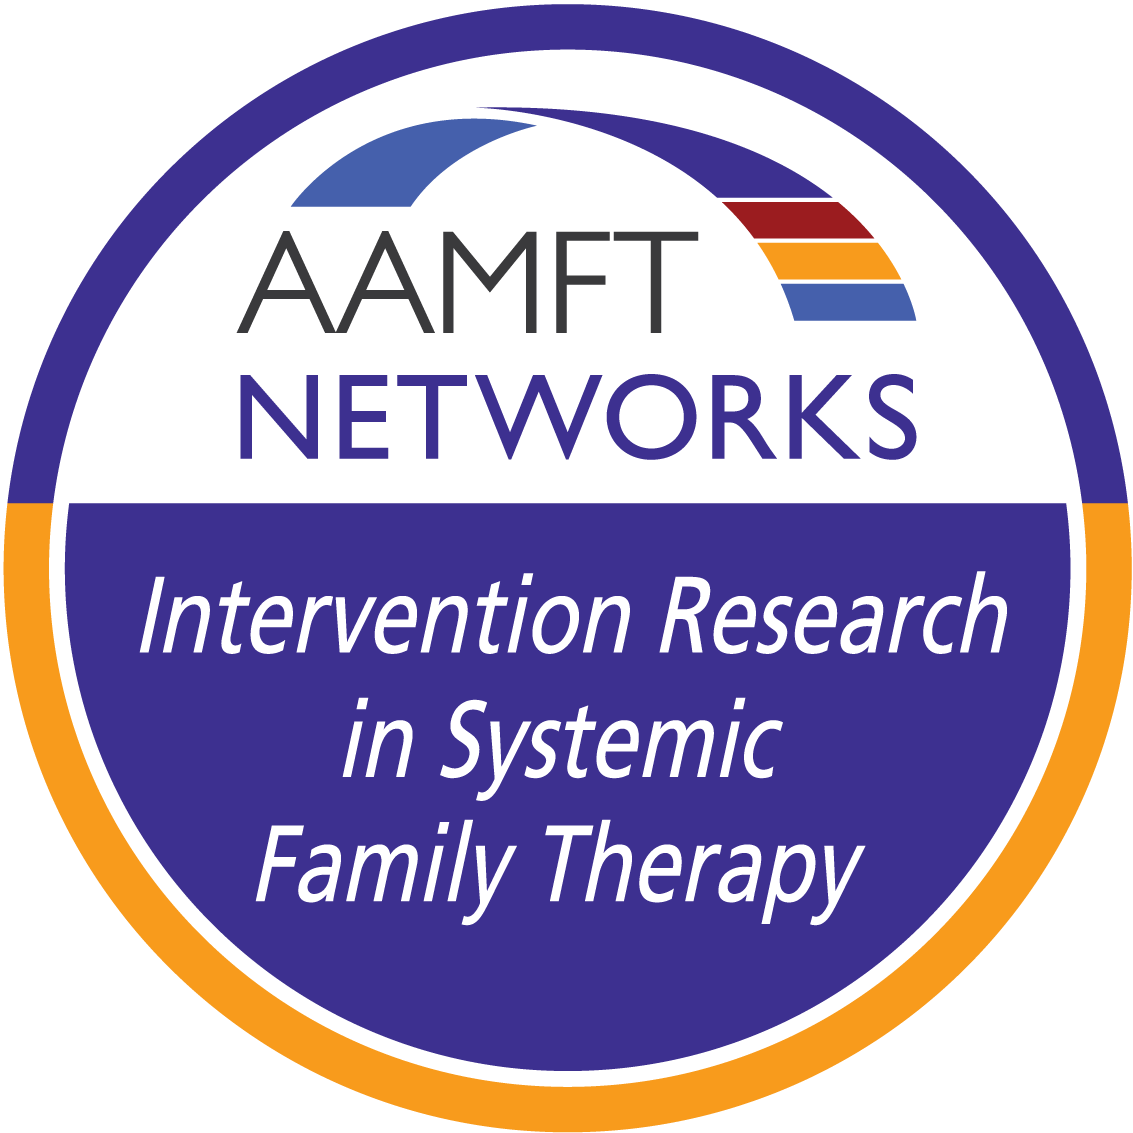 Intervention Research in Systemic Family